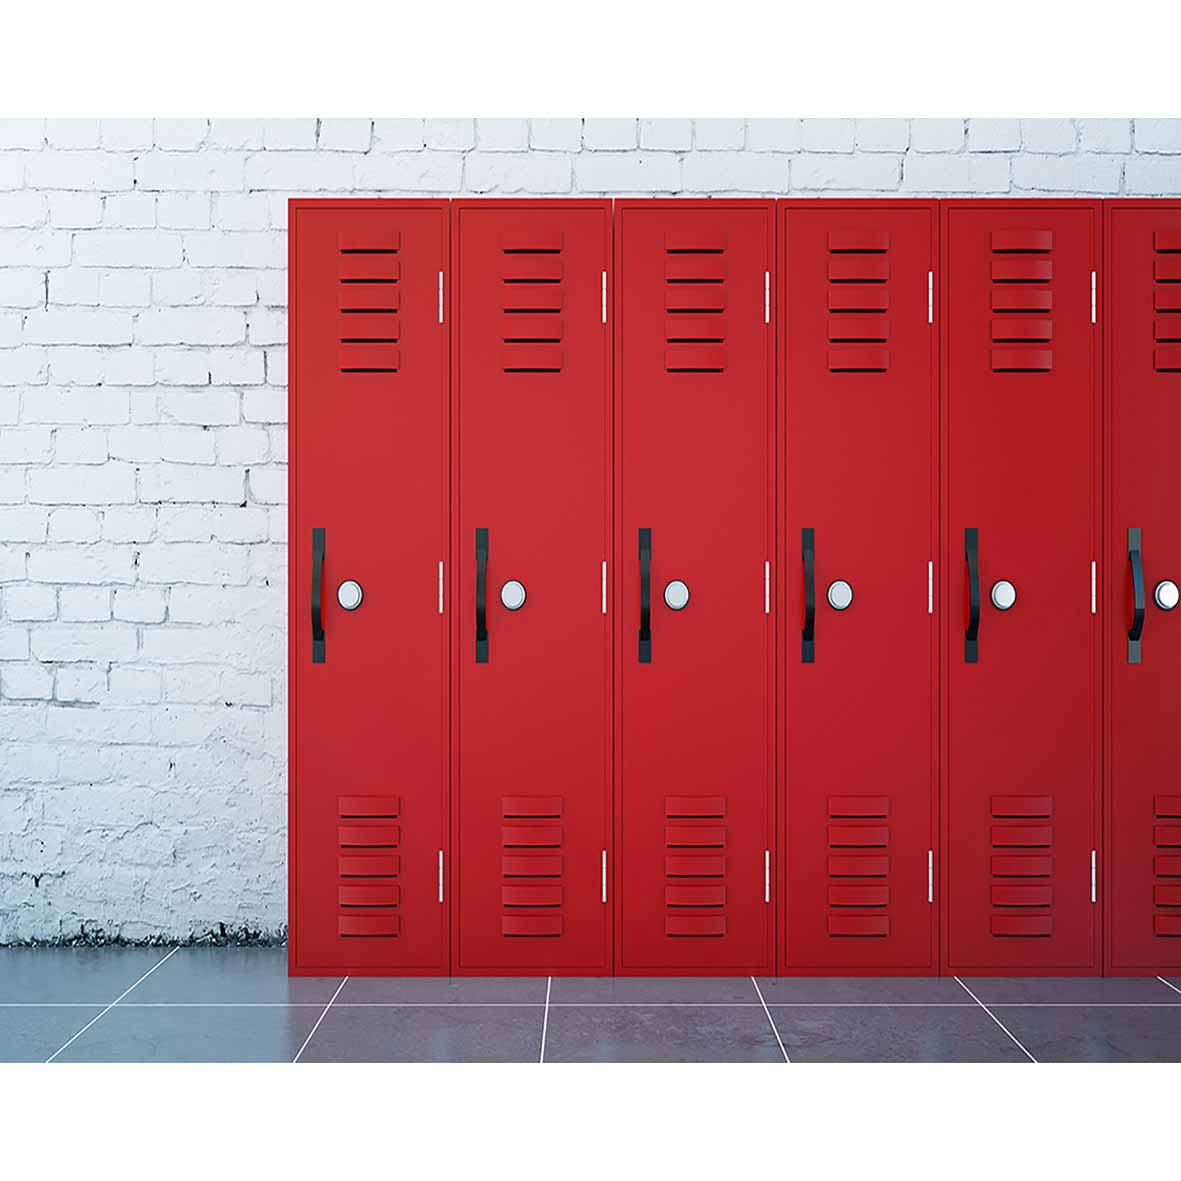 White Brick Wall Red Lockers Locker Room Background Photography Backdrops  Backdrop Decor Cloths Photography Vinyl In Background From Consumer  Electronics On ...